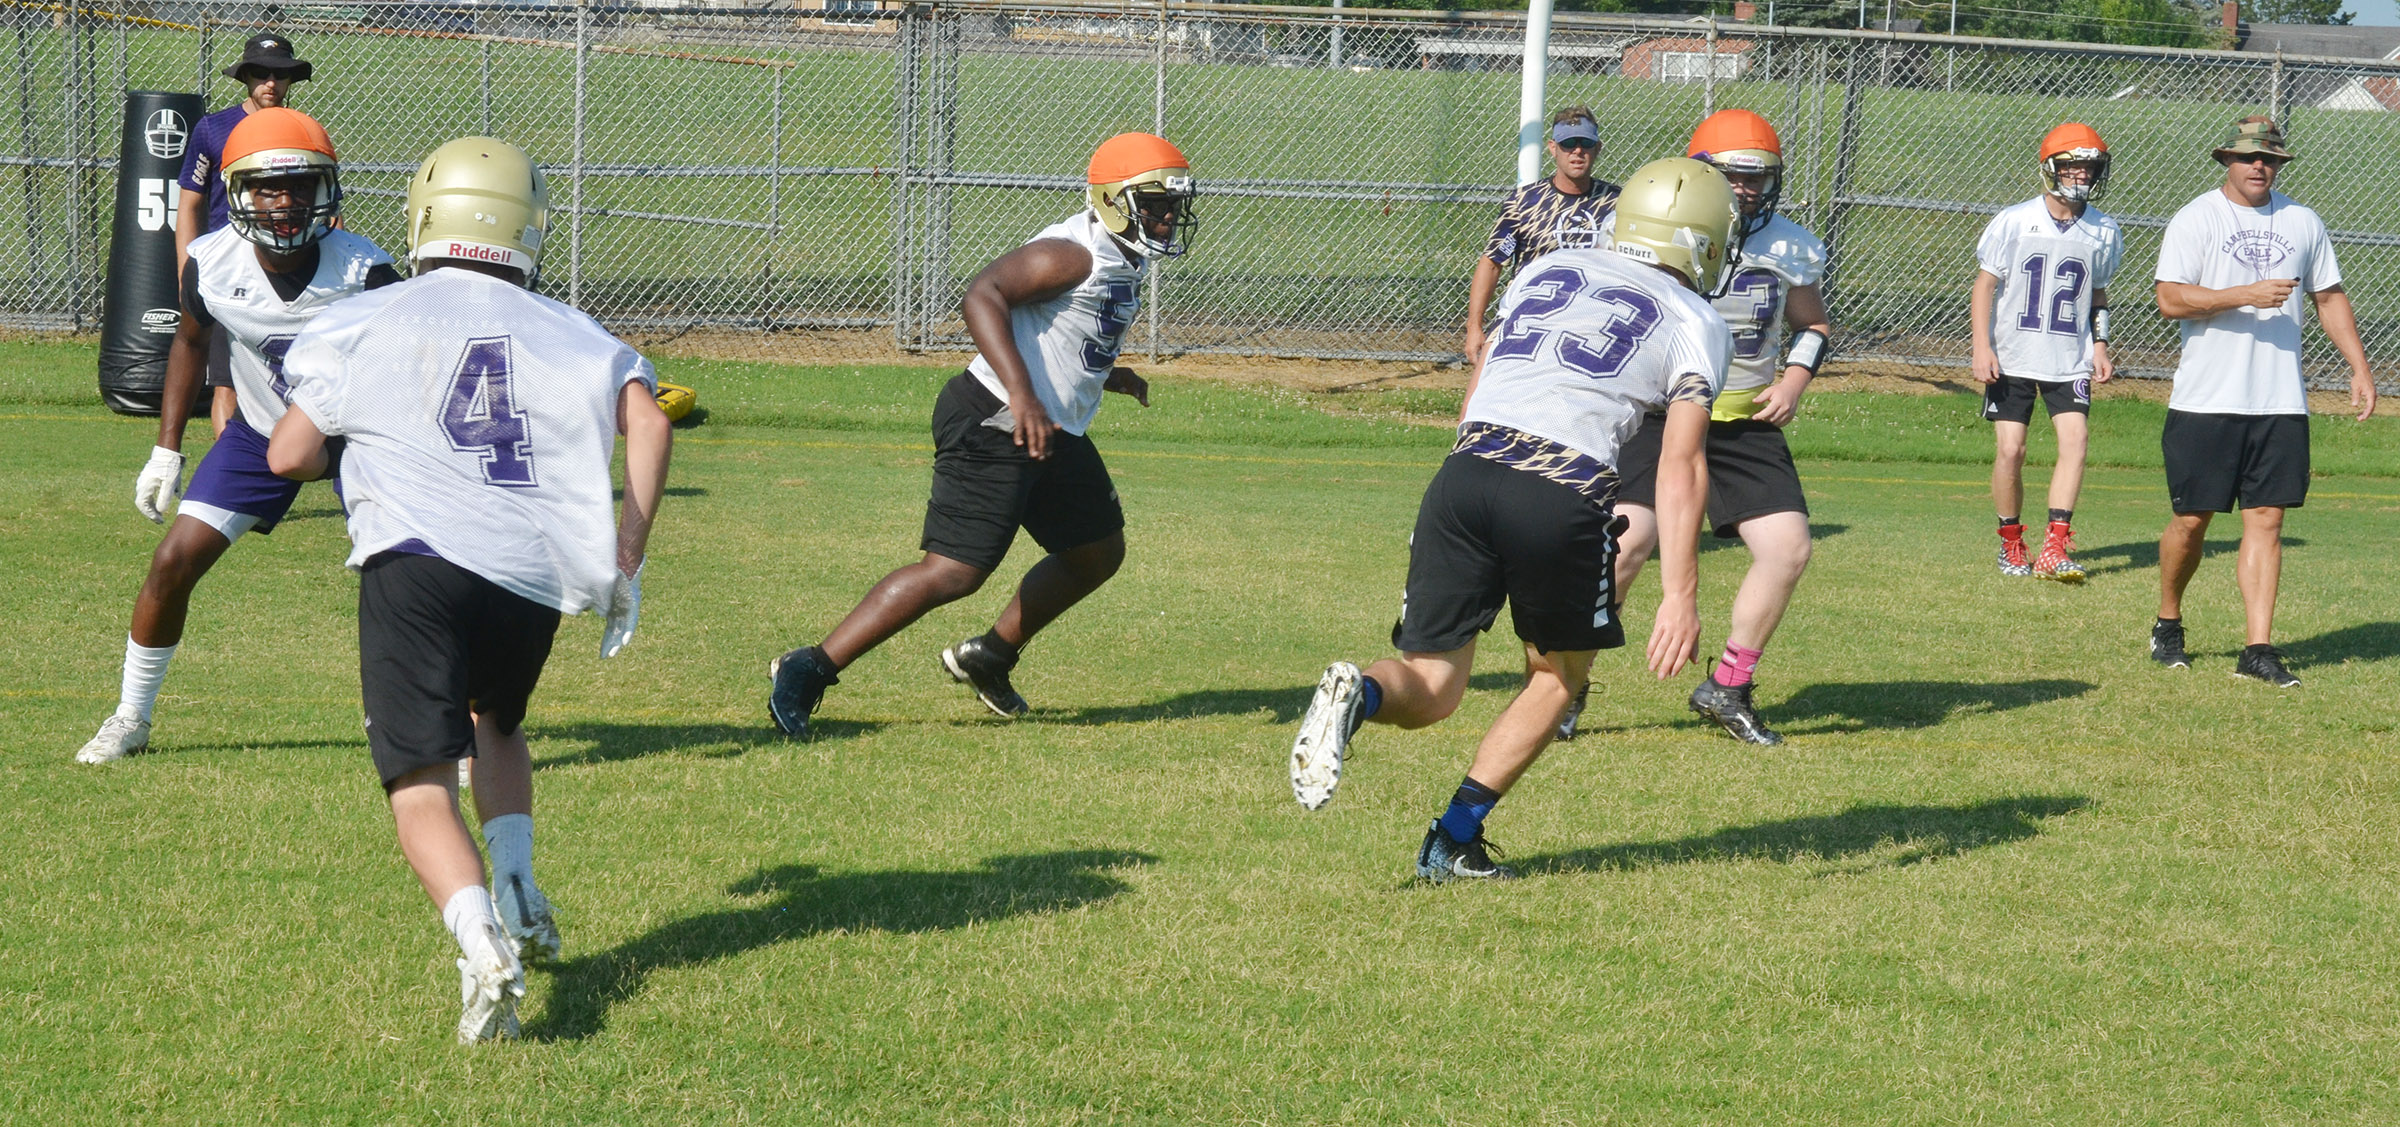 CHS football players run a play.